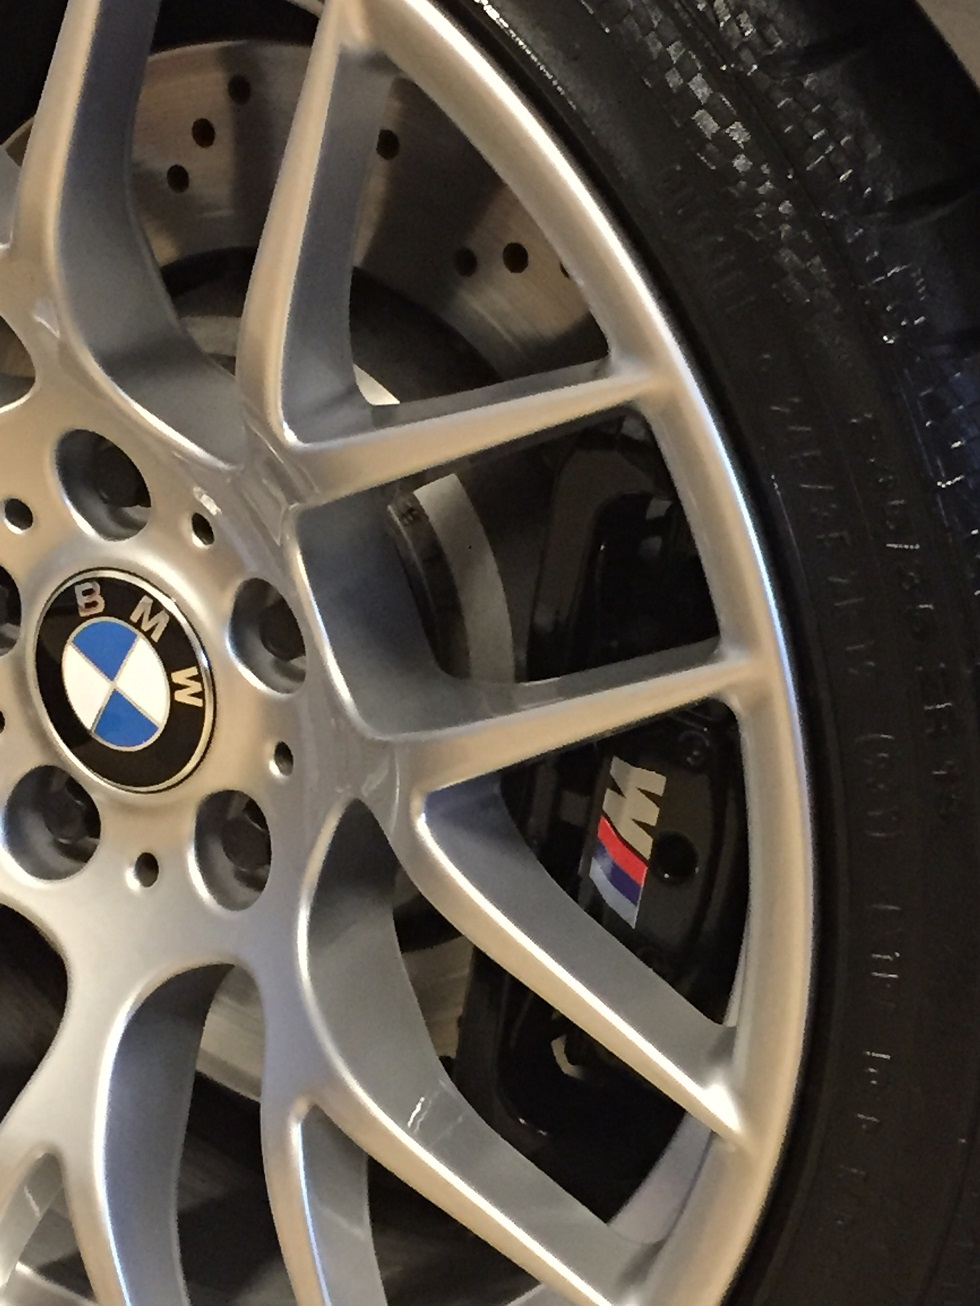 M Decals On Oem Brake Calipers Easy Diy - Bmw brake caliper decals